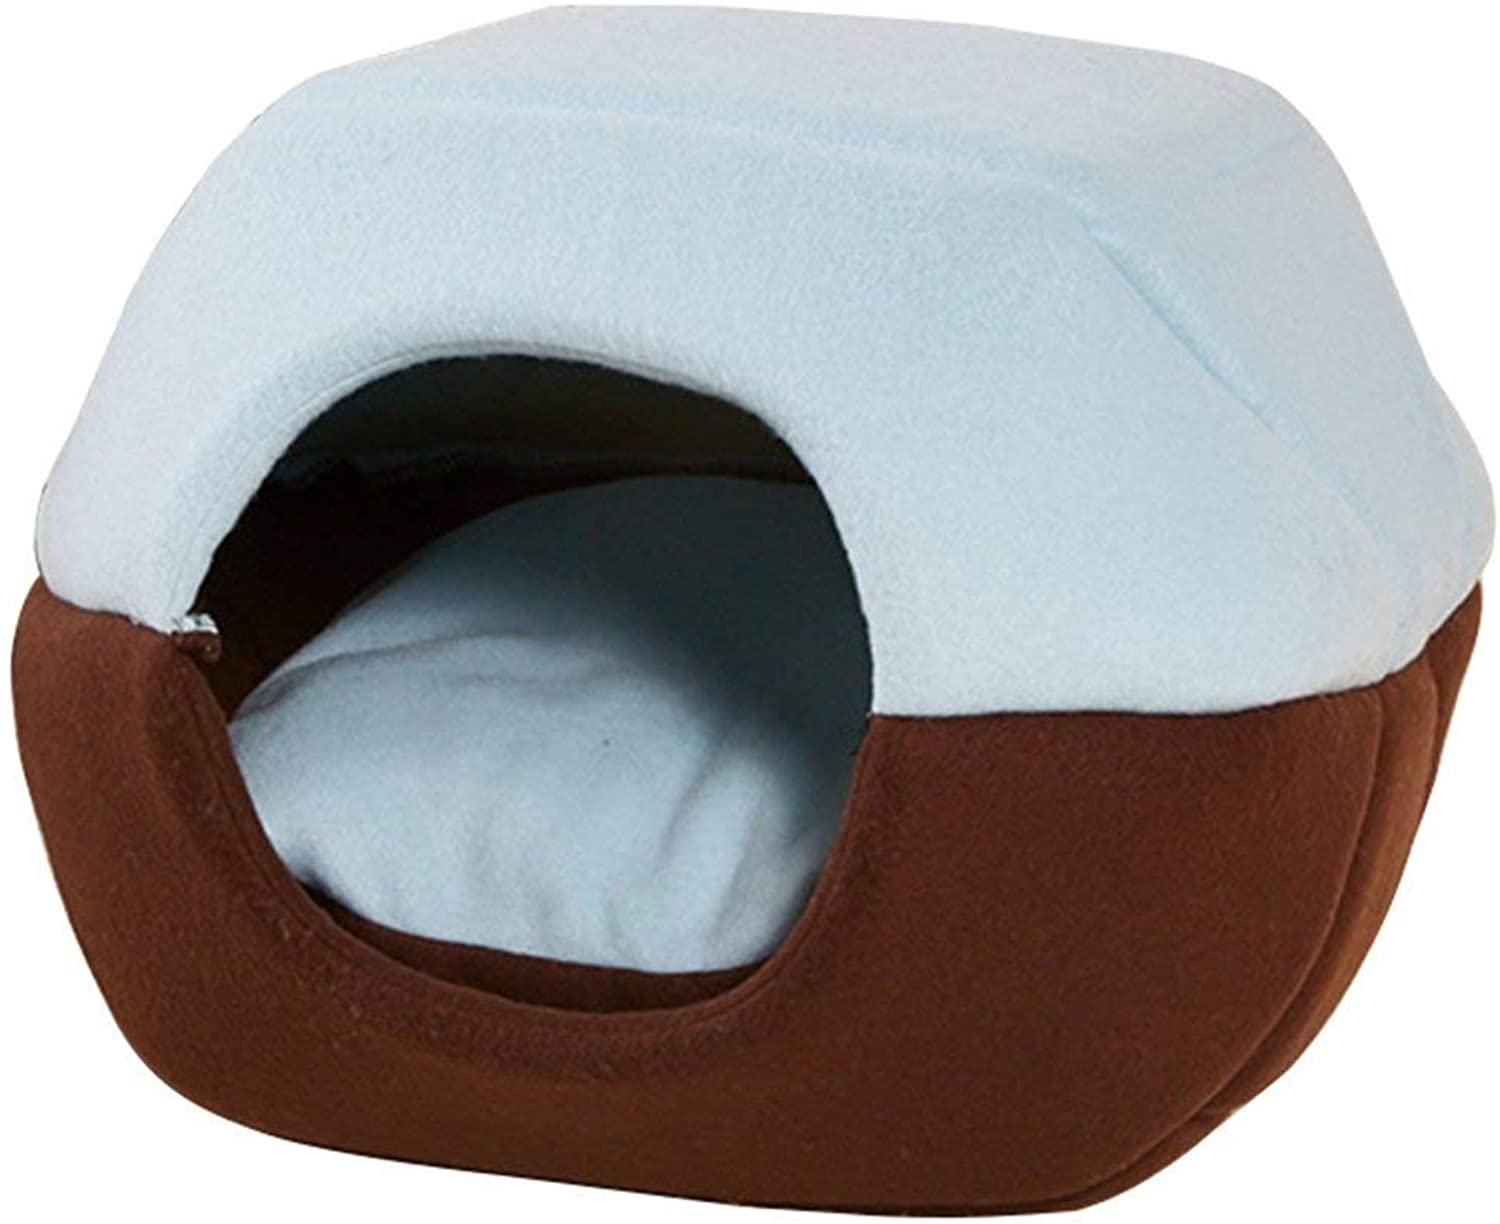 Pet Bed, 2 in 1 Comfortable Soft Cat Litter Cave, Windproof Dog House Warm Hidden Cat Sleeping Bag, Detachable Cushion,bluee+Brown,S